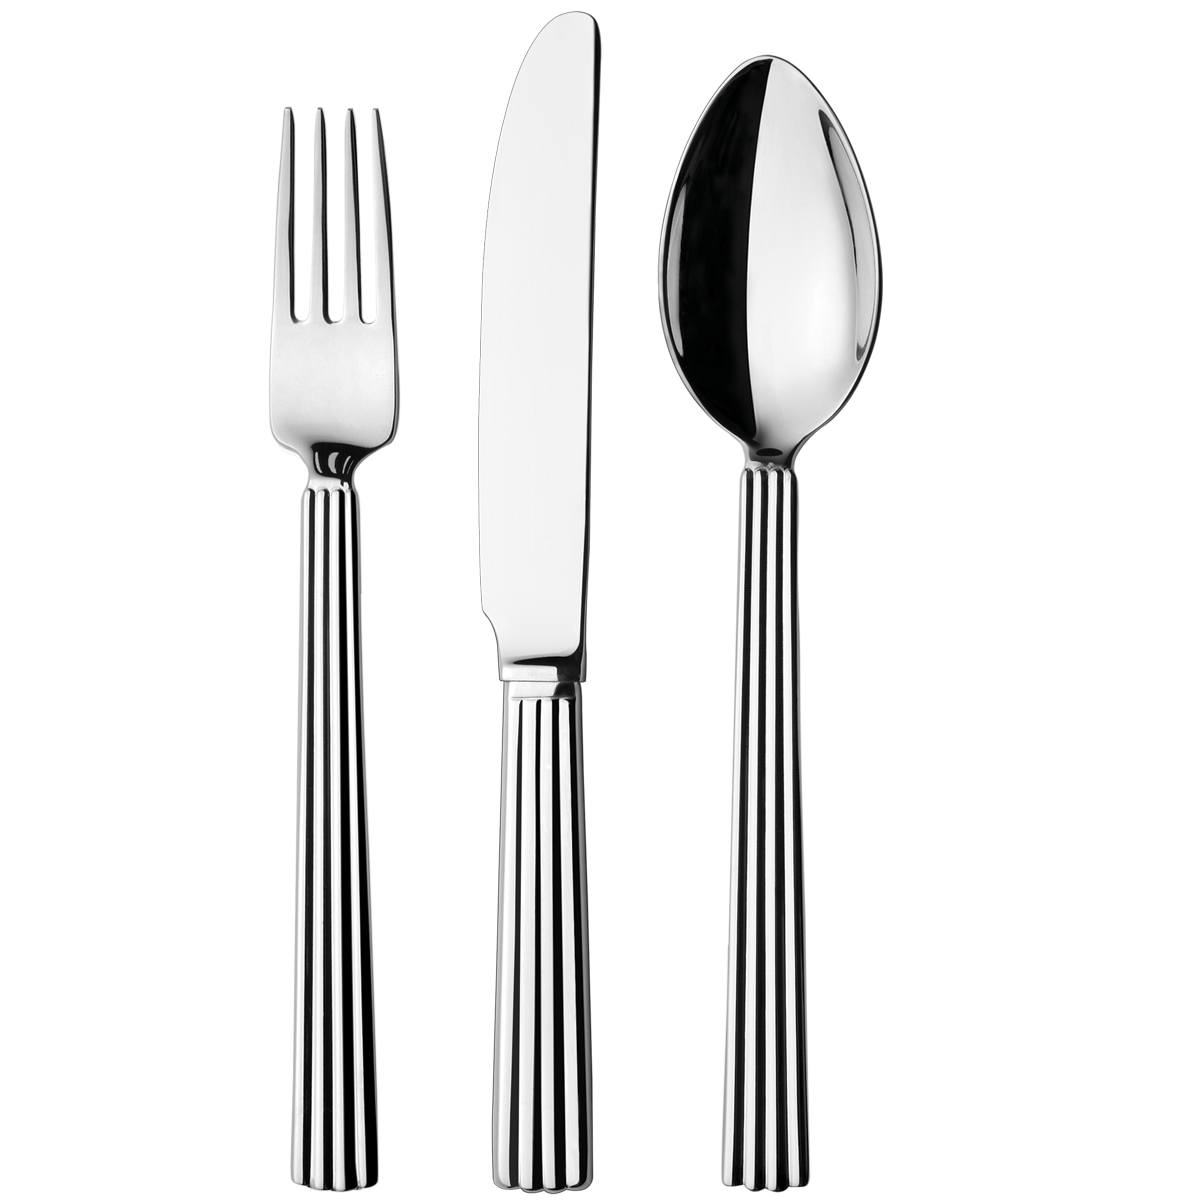 Png transparent images all. Dishes clipart plate silverware